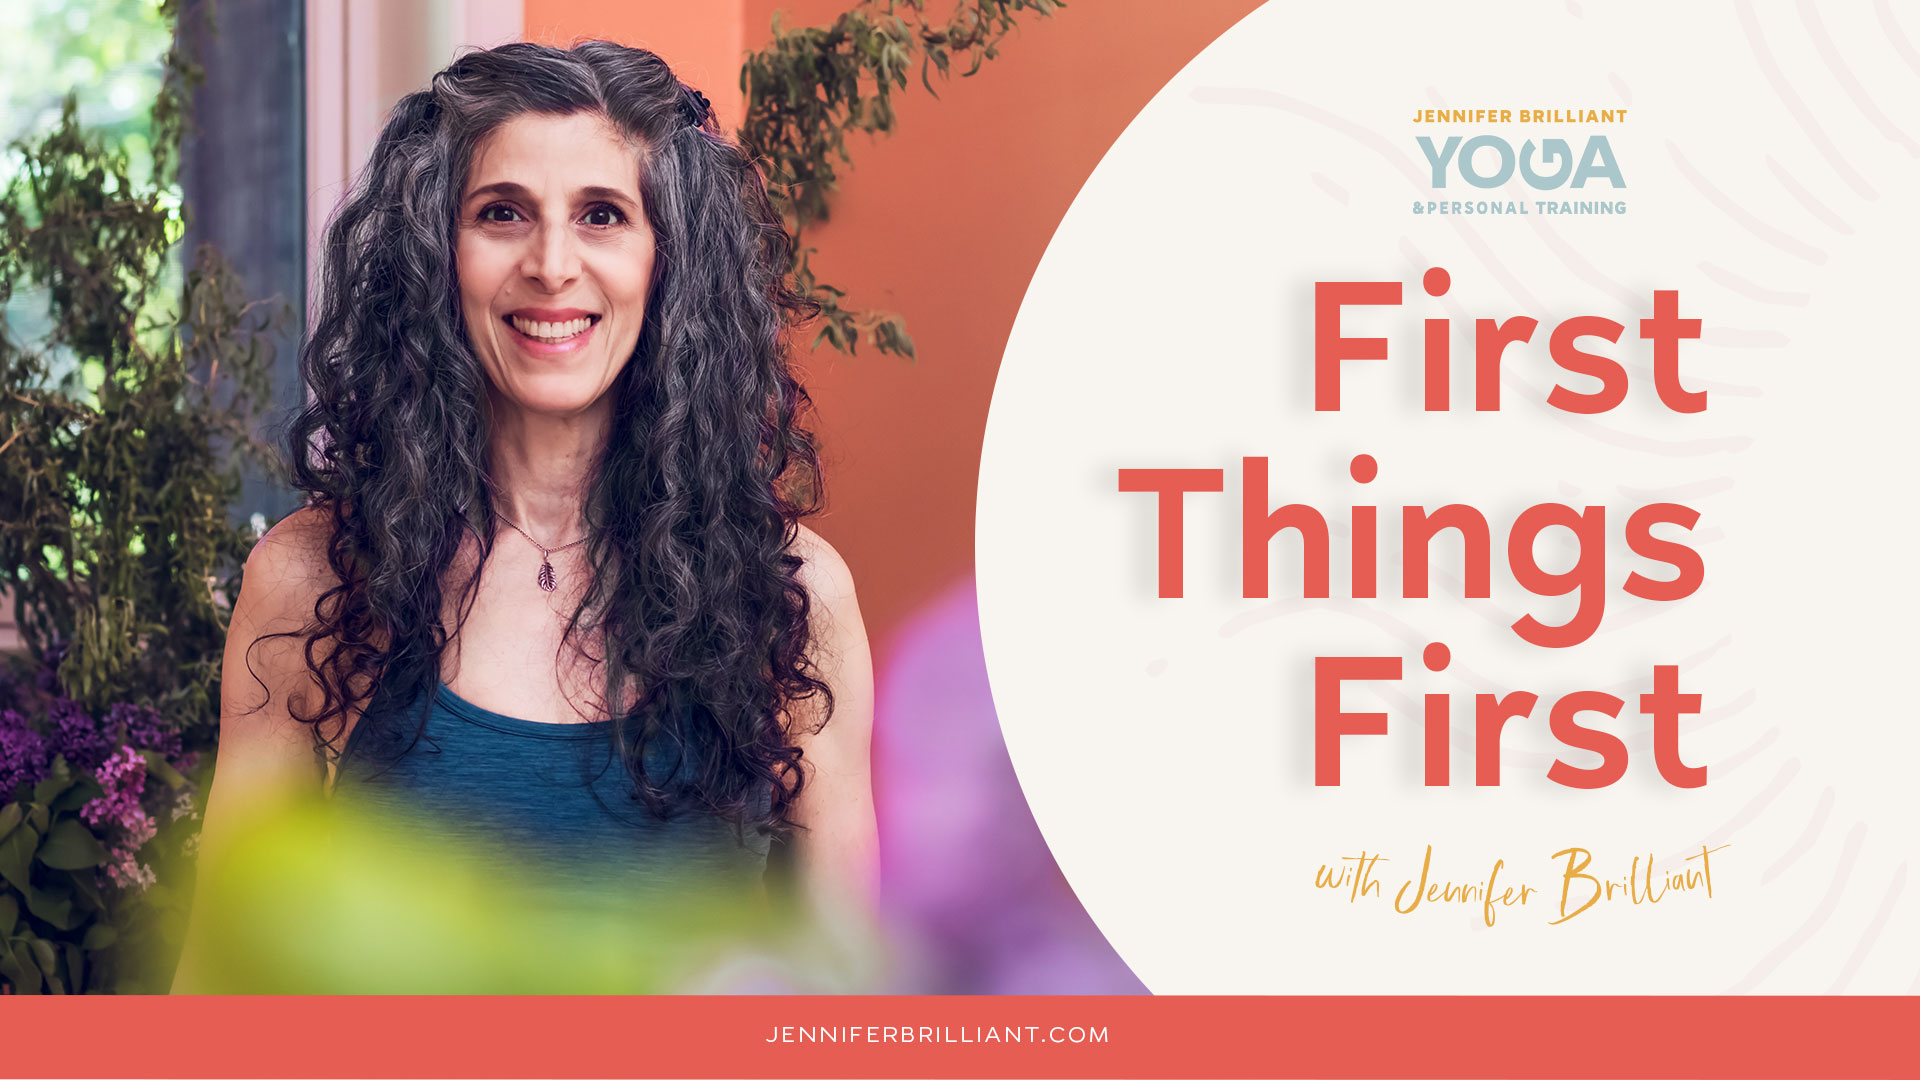 On-Demand Video Yoga First Things First